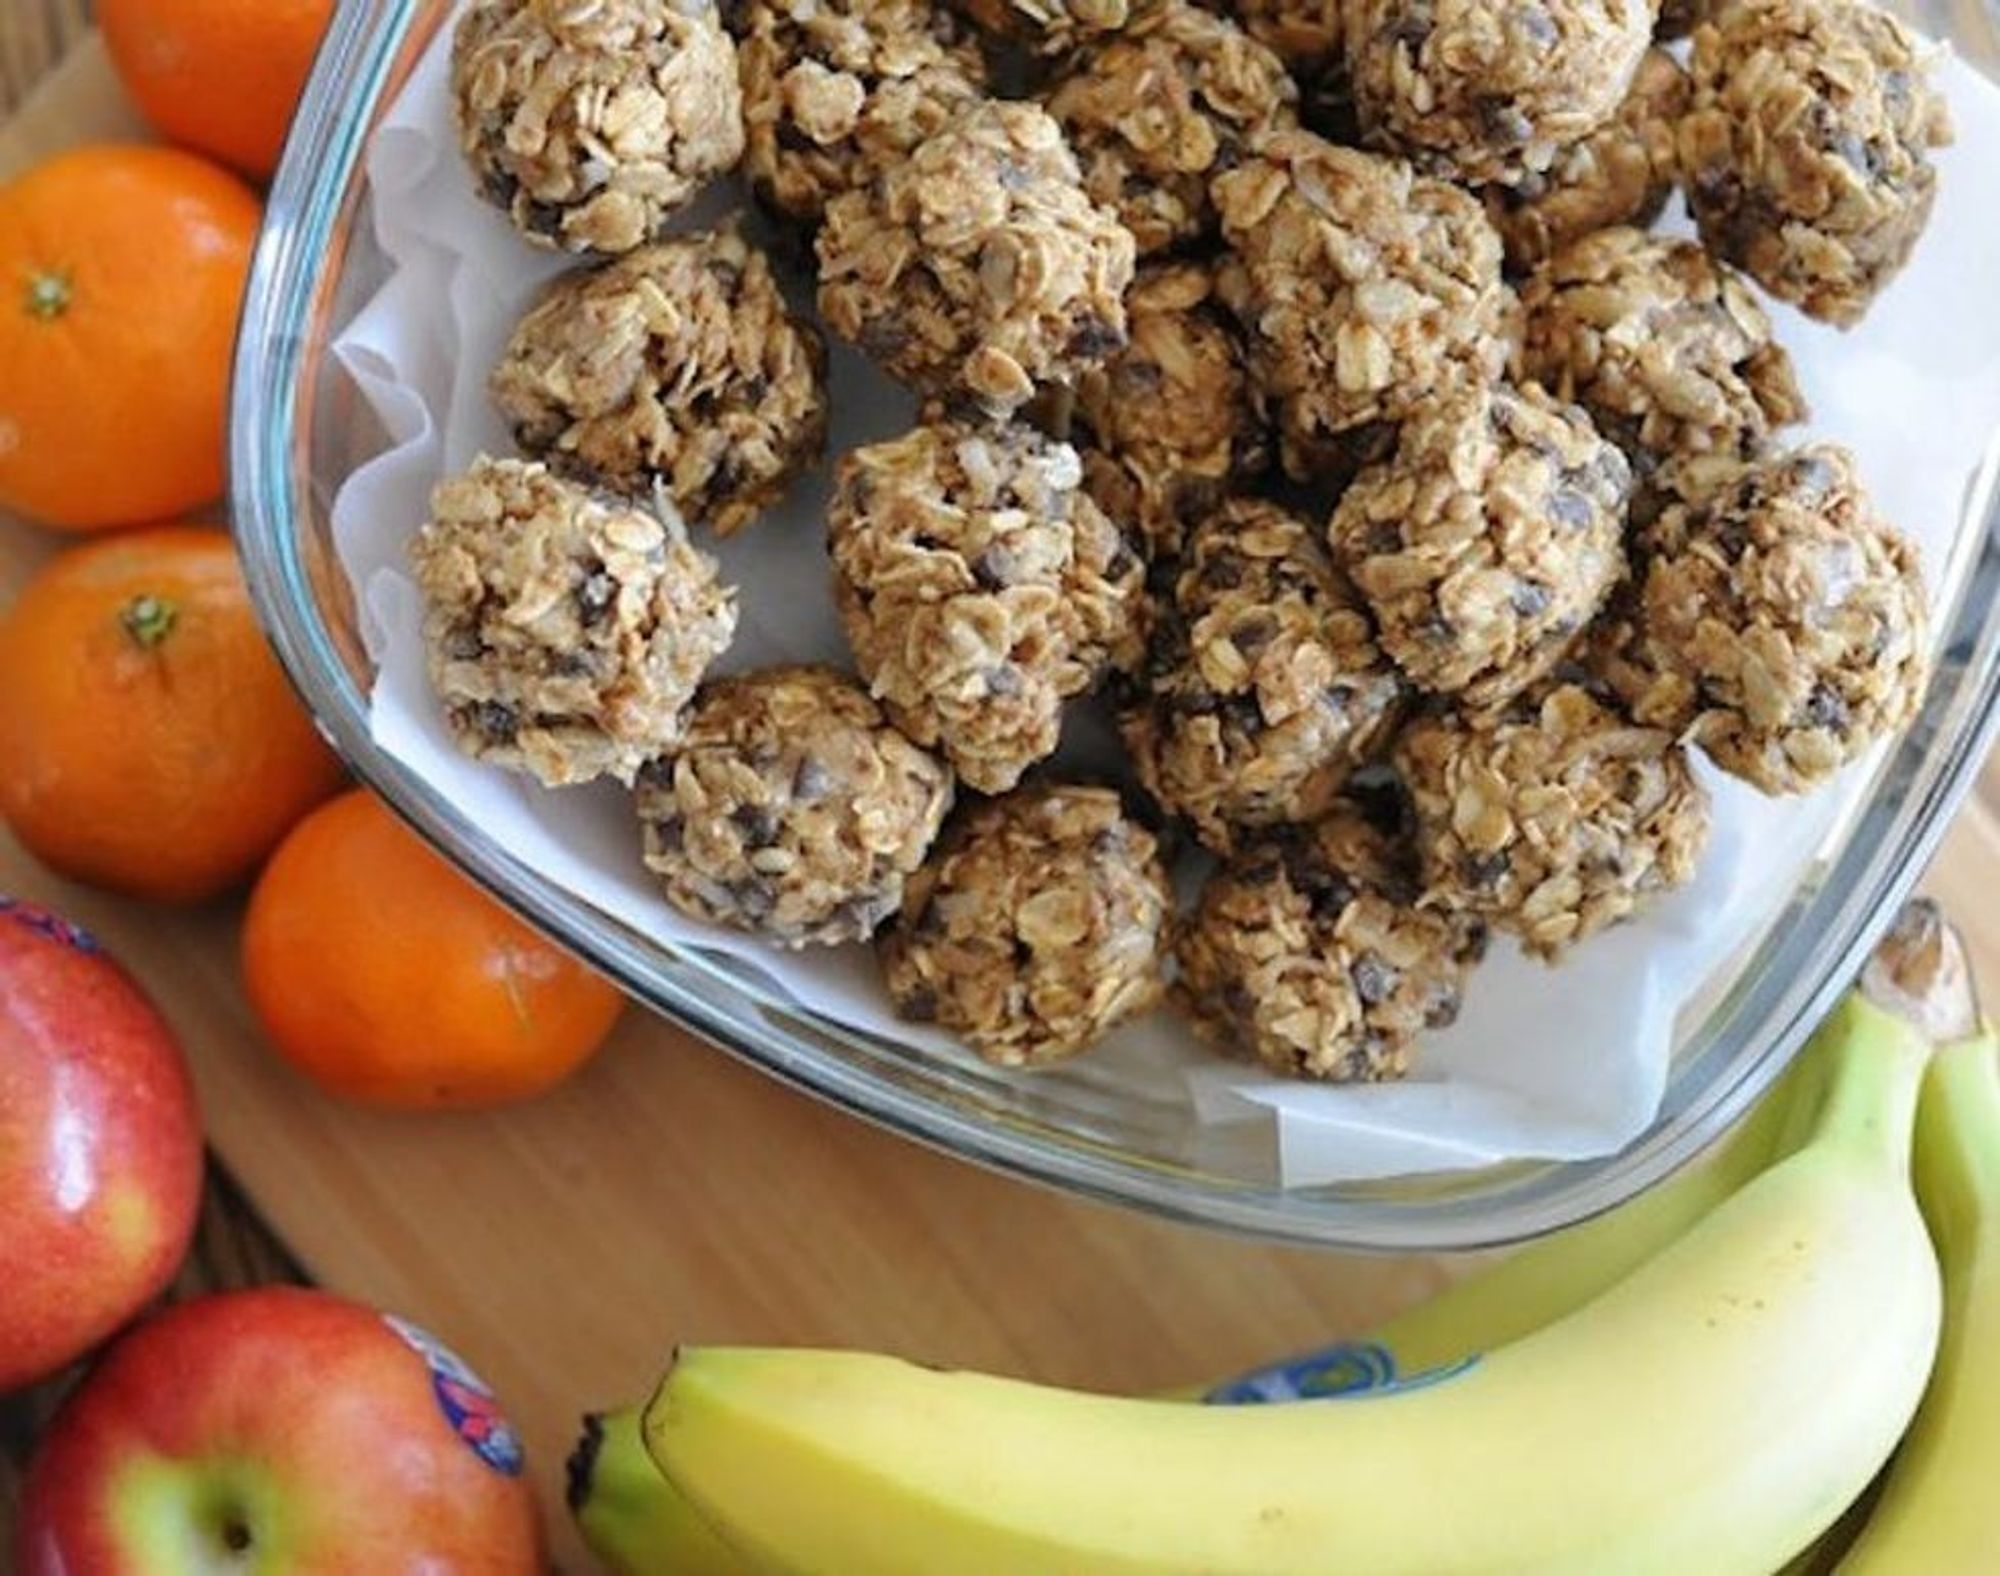 12 Healthy (Kid-Approved!) After School Snack Recipes